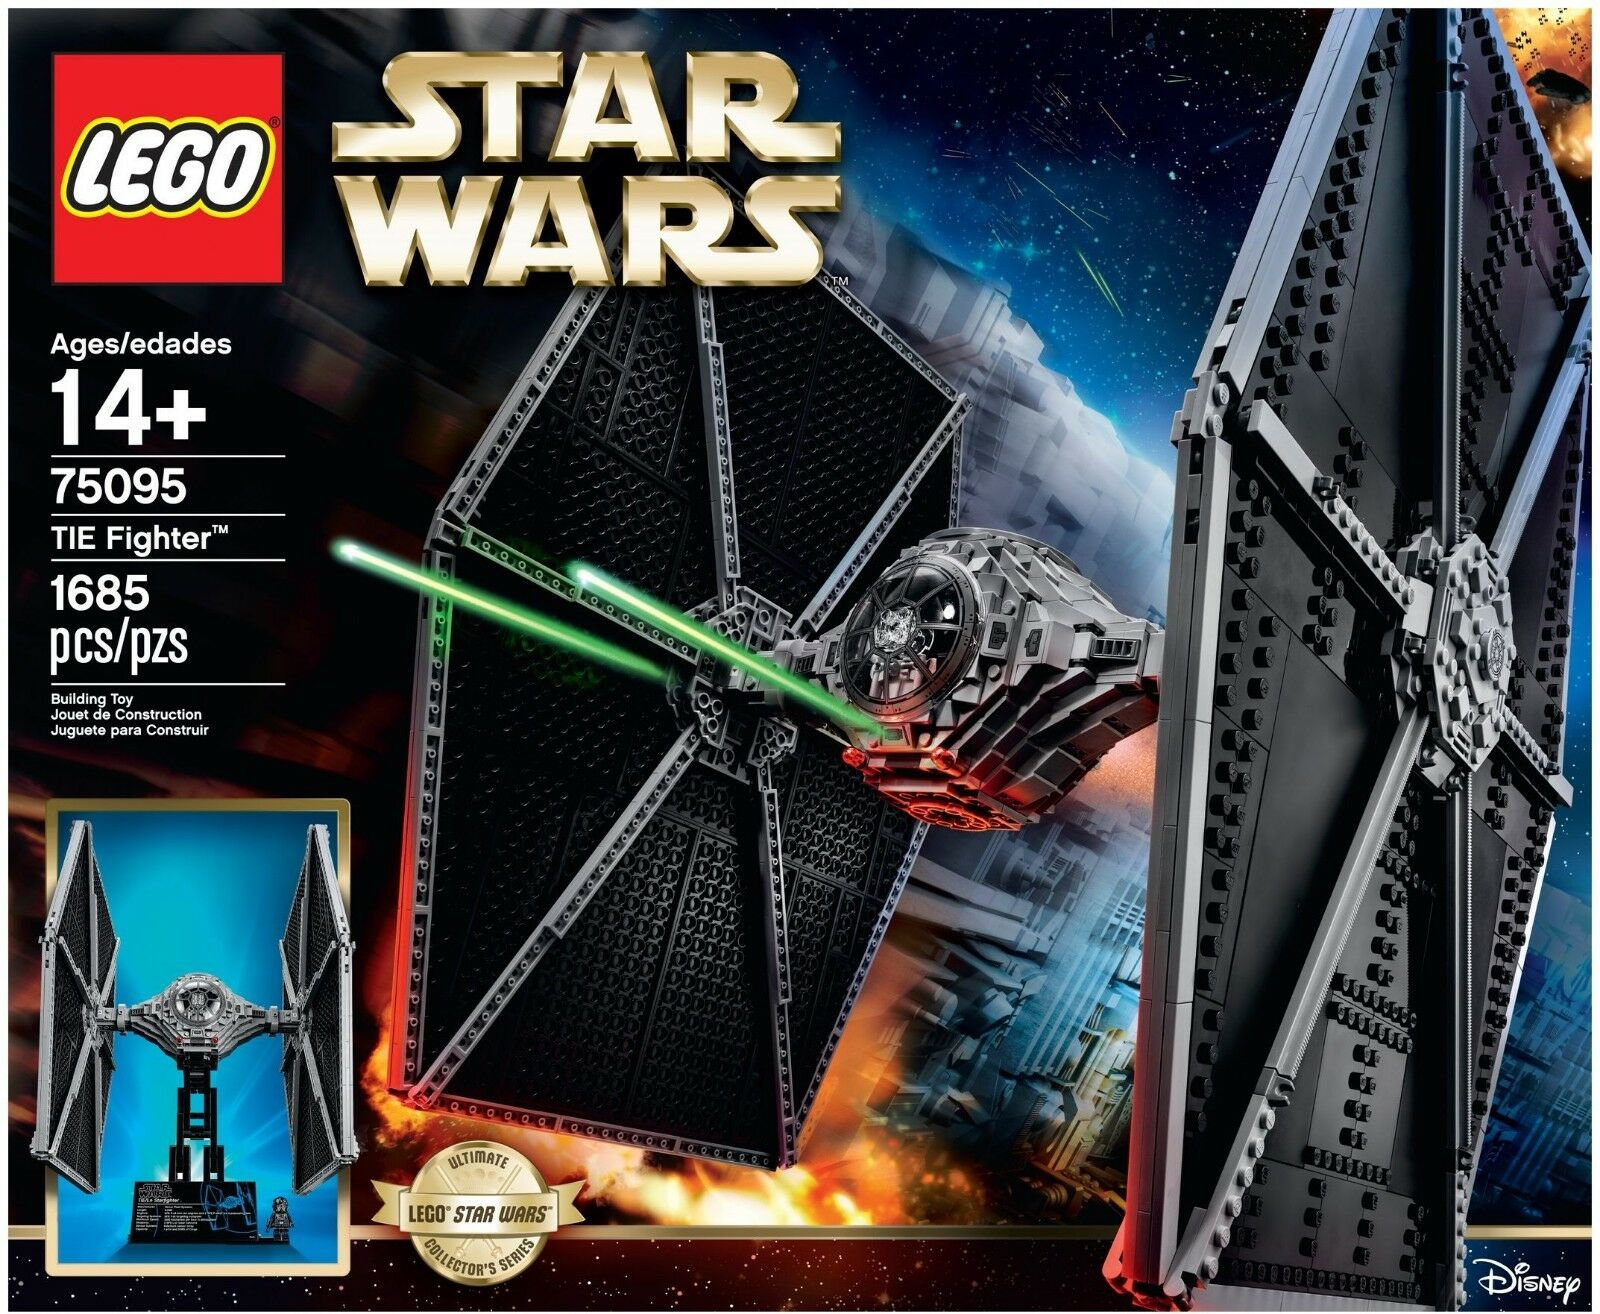 LEGO STAR WARS UCS TIE FIGHTER 75095 - SEALED